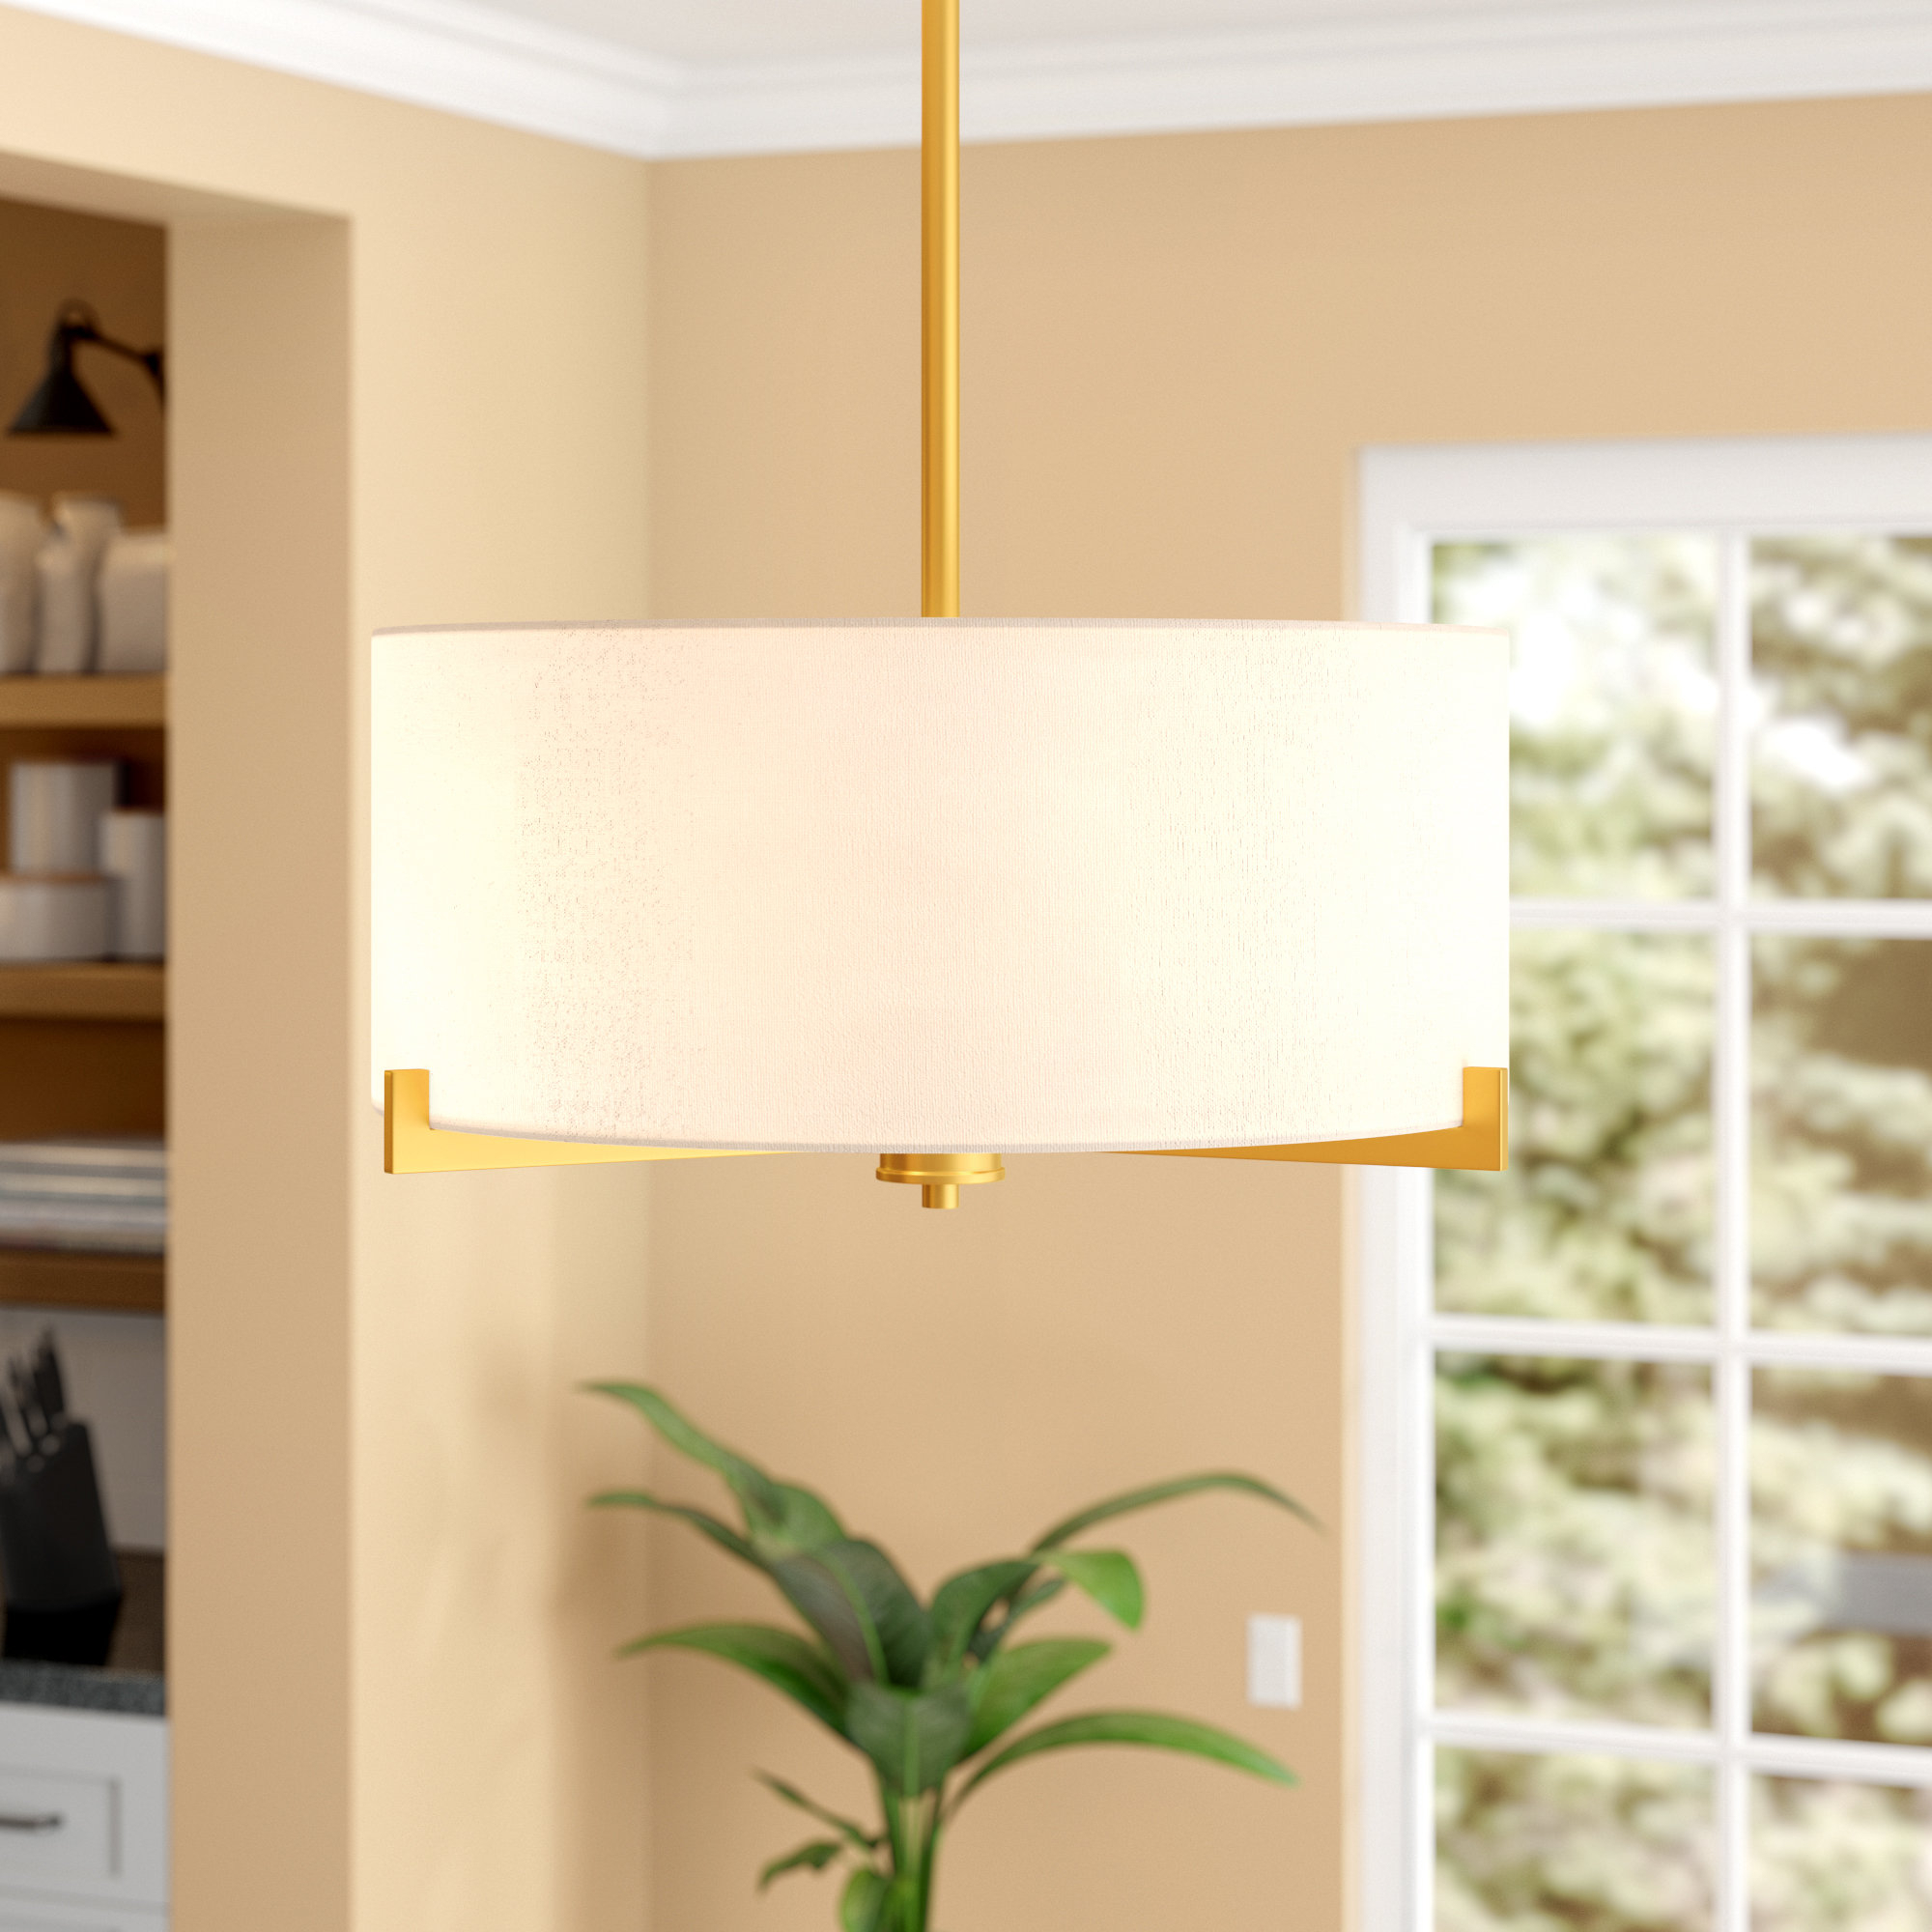 Widely Used Dirksen 3 Light Single Cylinder Chandeliers Pertaining To Avondale 3 Light Drum Chandelier (View 19 of 20)